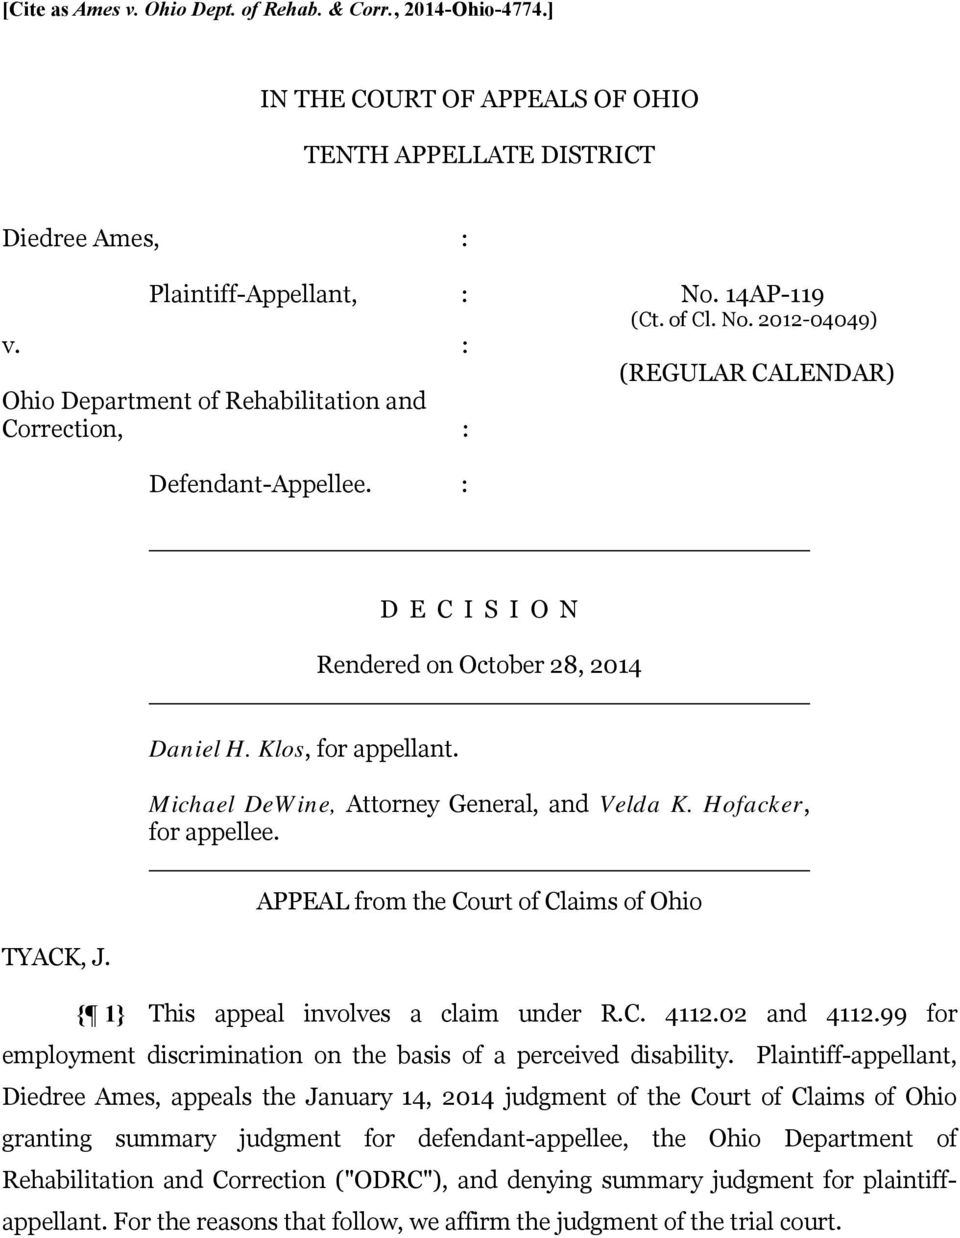 Michael DeWine, Attorney General, and Velda K. Hofacker, for appellee. APPEAL from the Court of Claims of Ohio TYACK, J. { 1} This appeal involves a claim under R.C. 4112.02 and 4112.